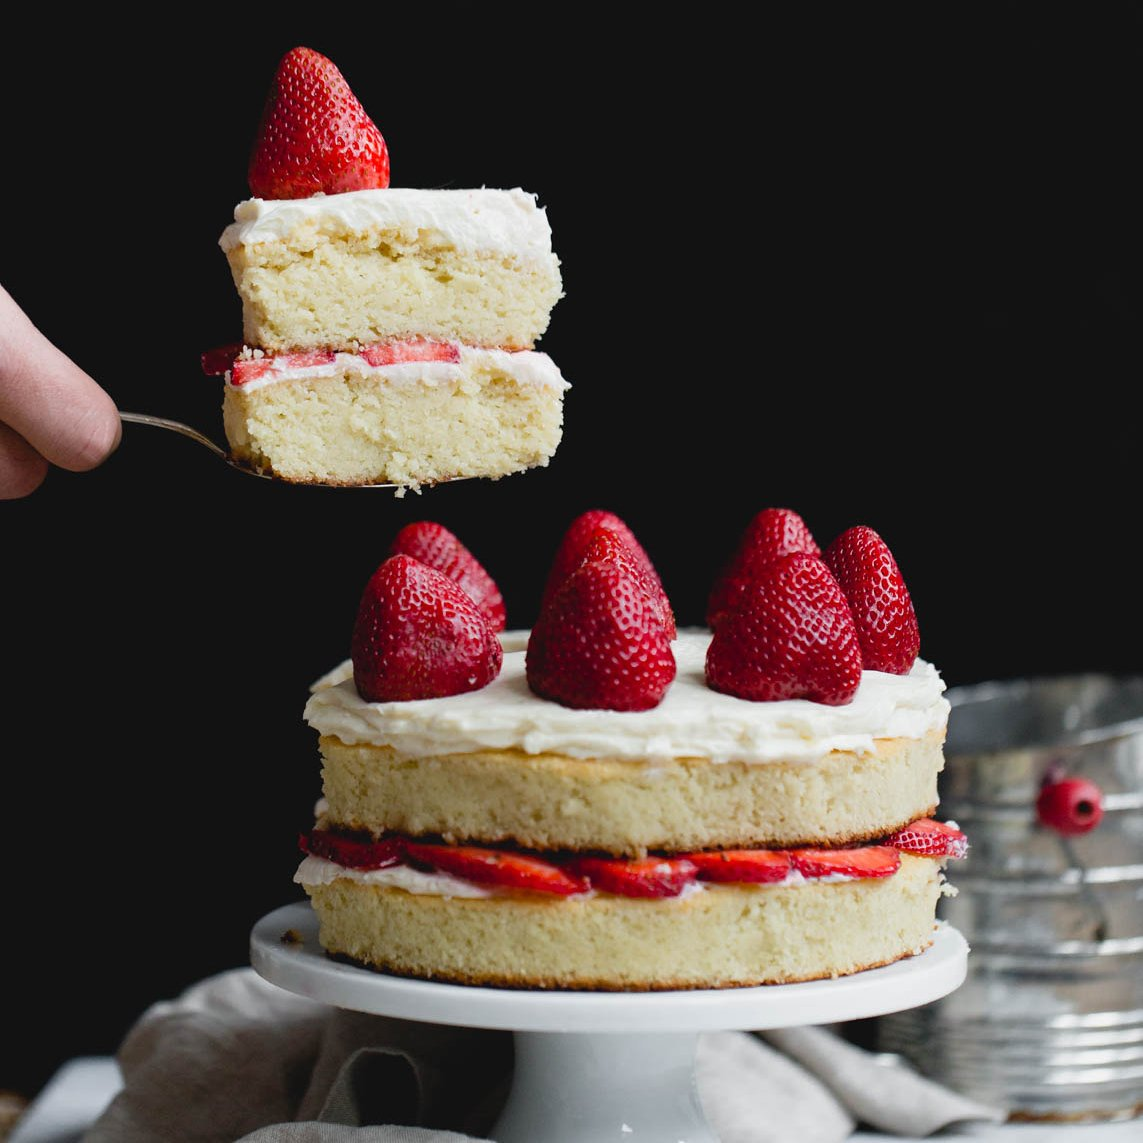 Almond Flour Strawberry Shortcake Cake Gluten Free Ambitious Kitchen